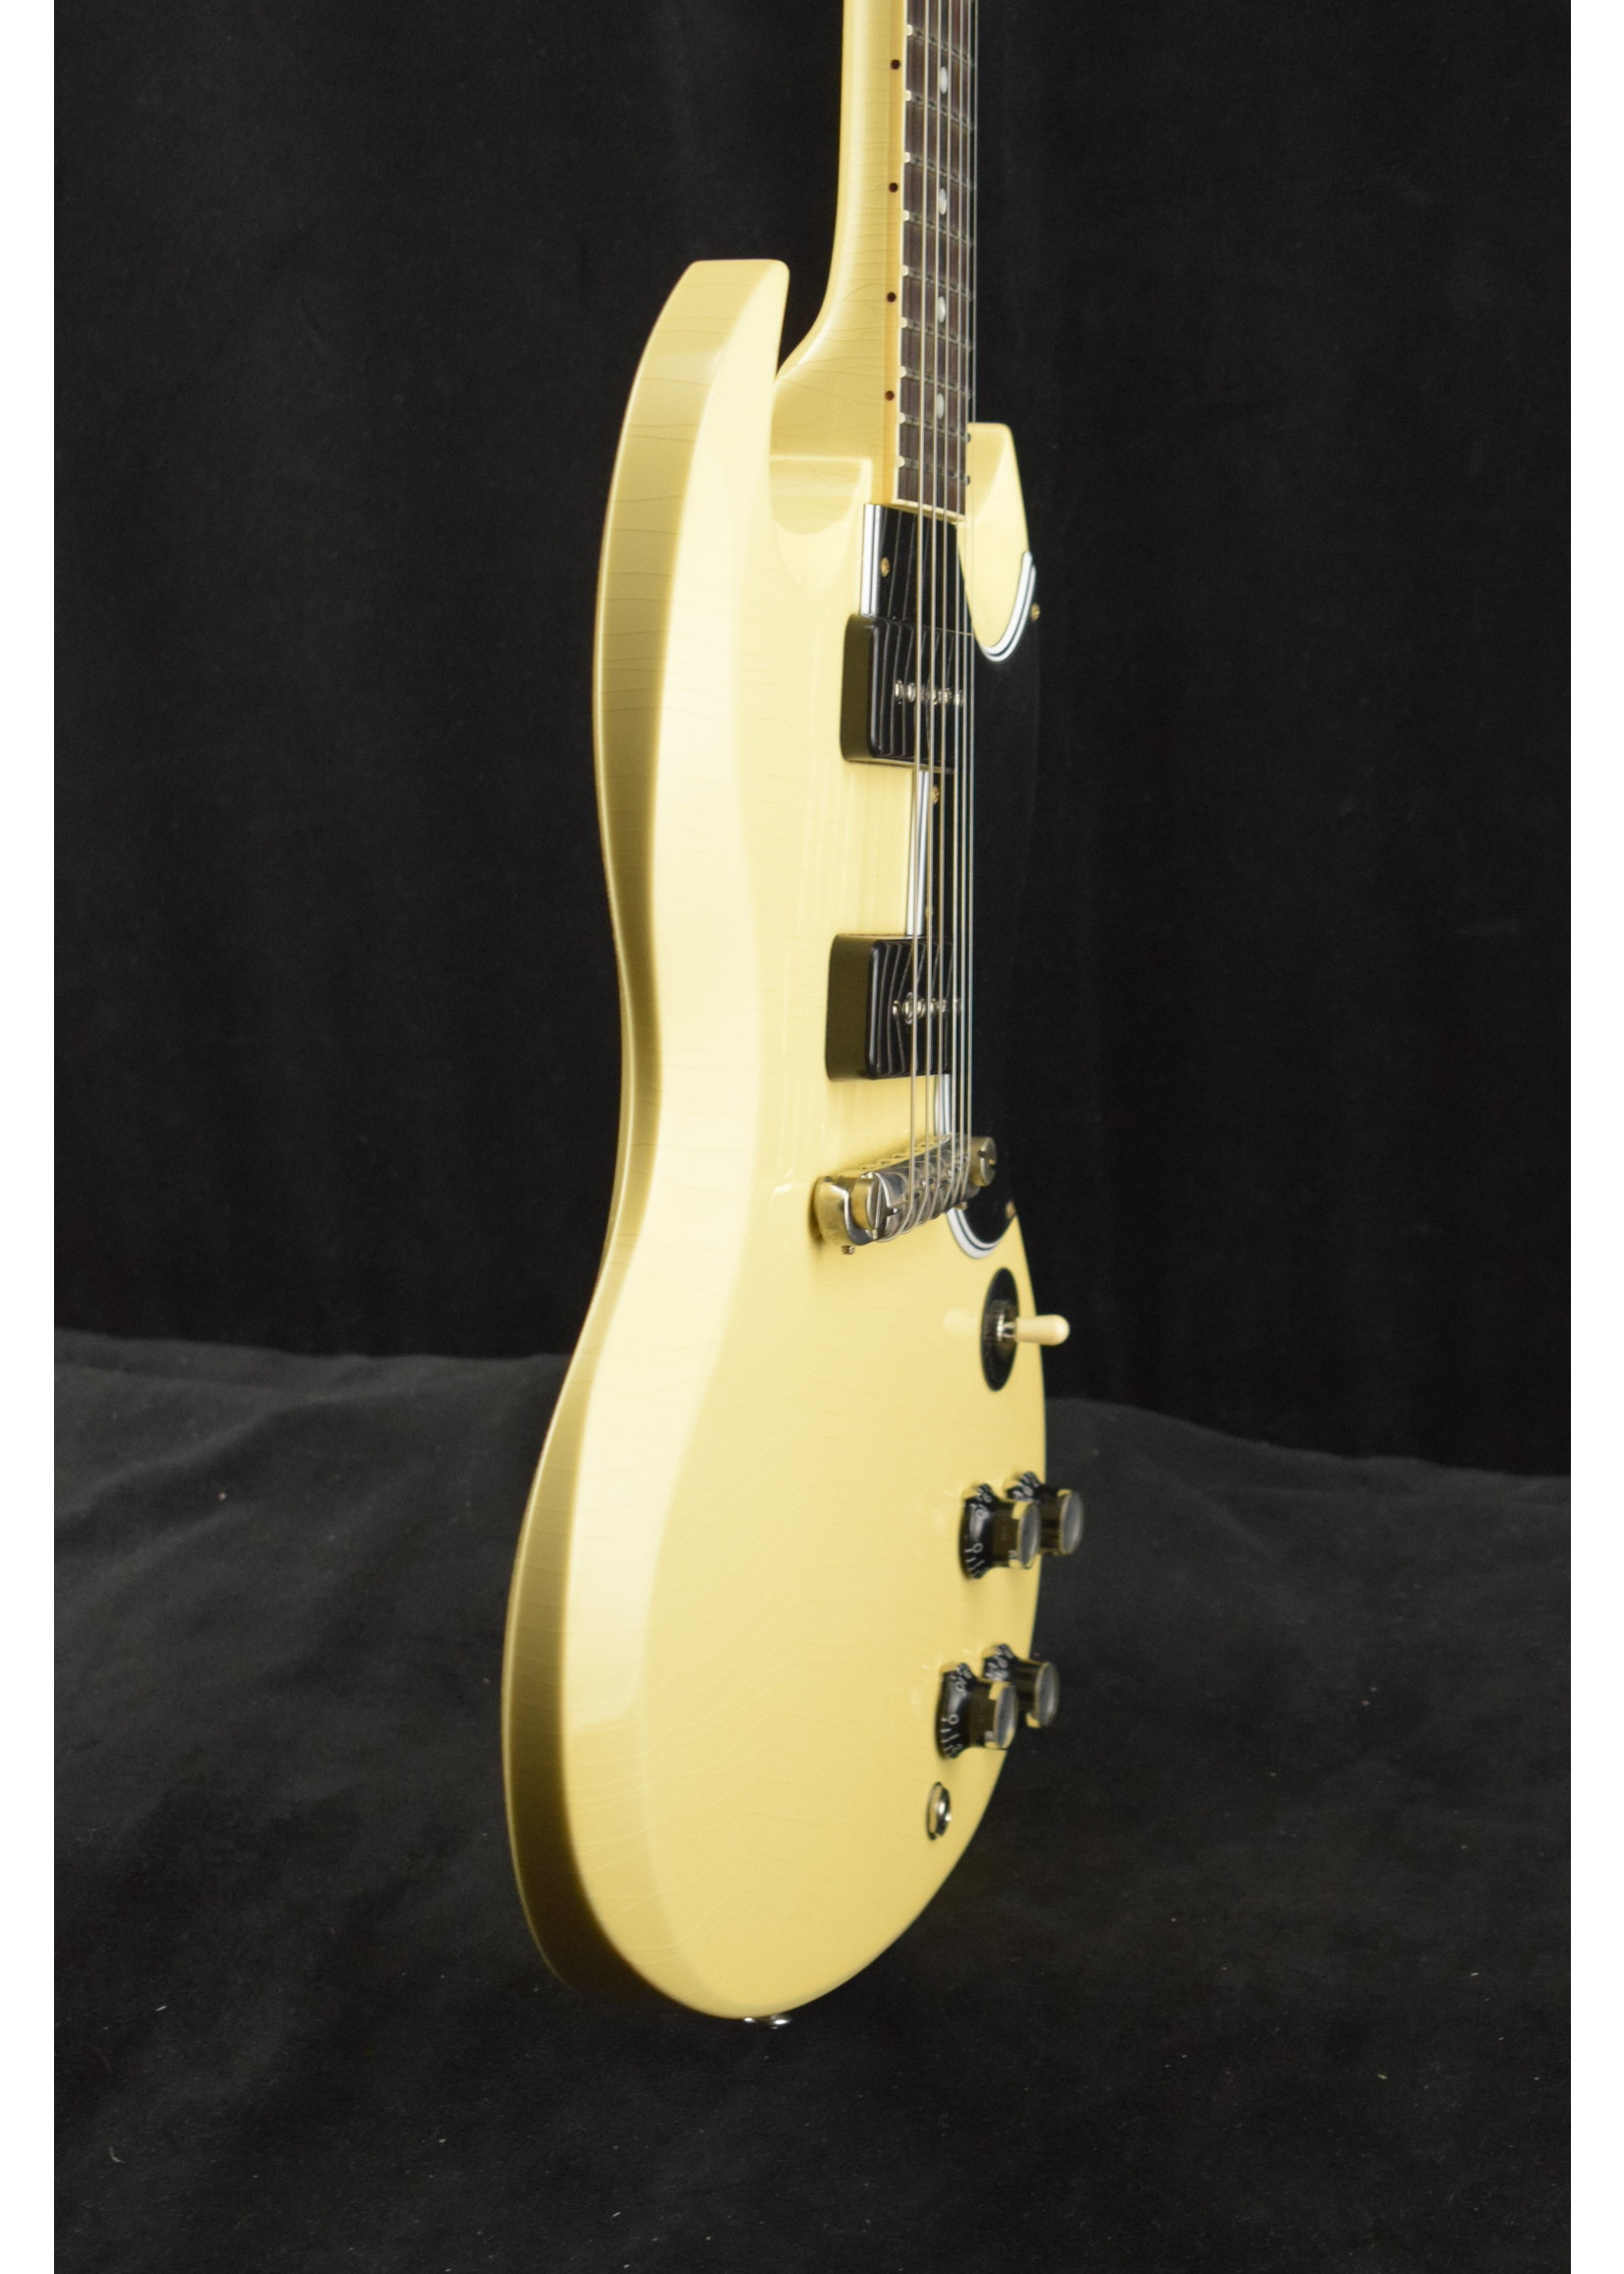 Gibson Gibson Murphy Lab 1963 SG Special Lightning Bar Classic White Ultra Light Aged